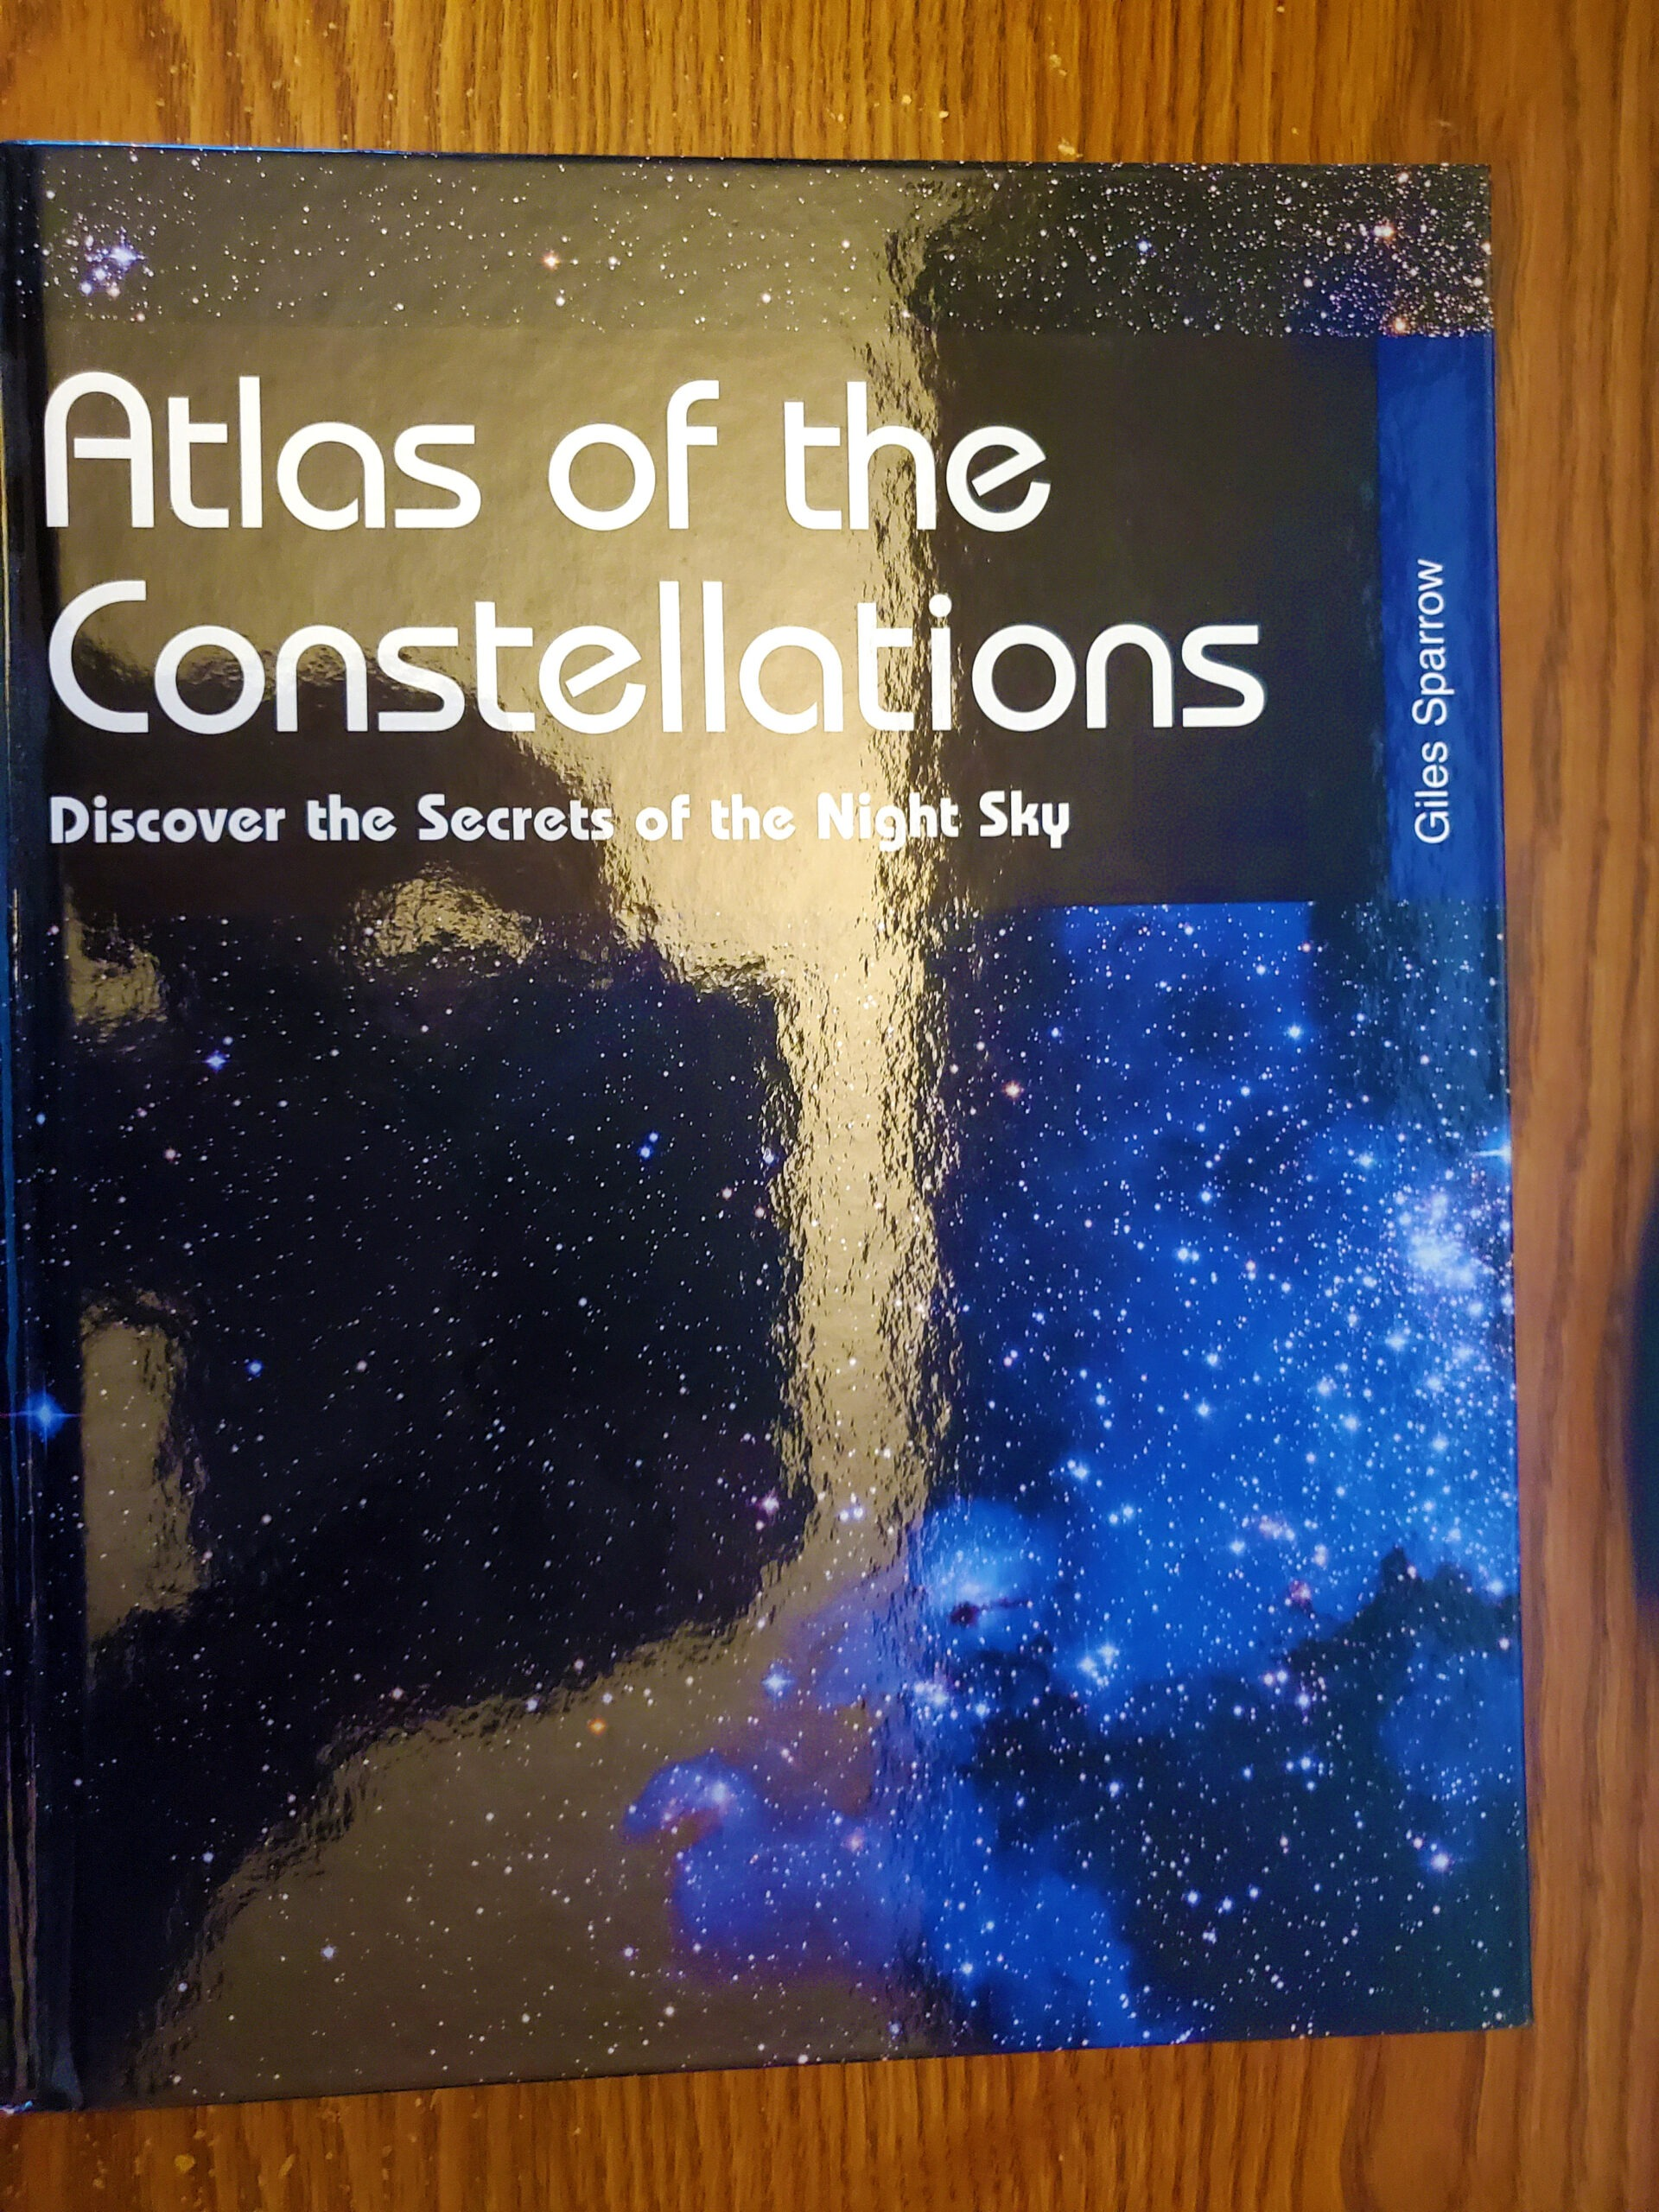 Atlas of the Constellations by Giles Sparrow